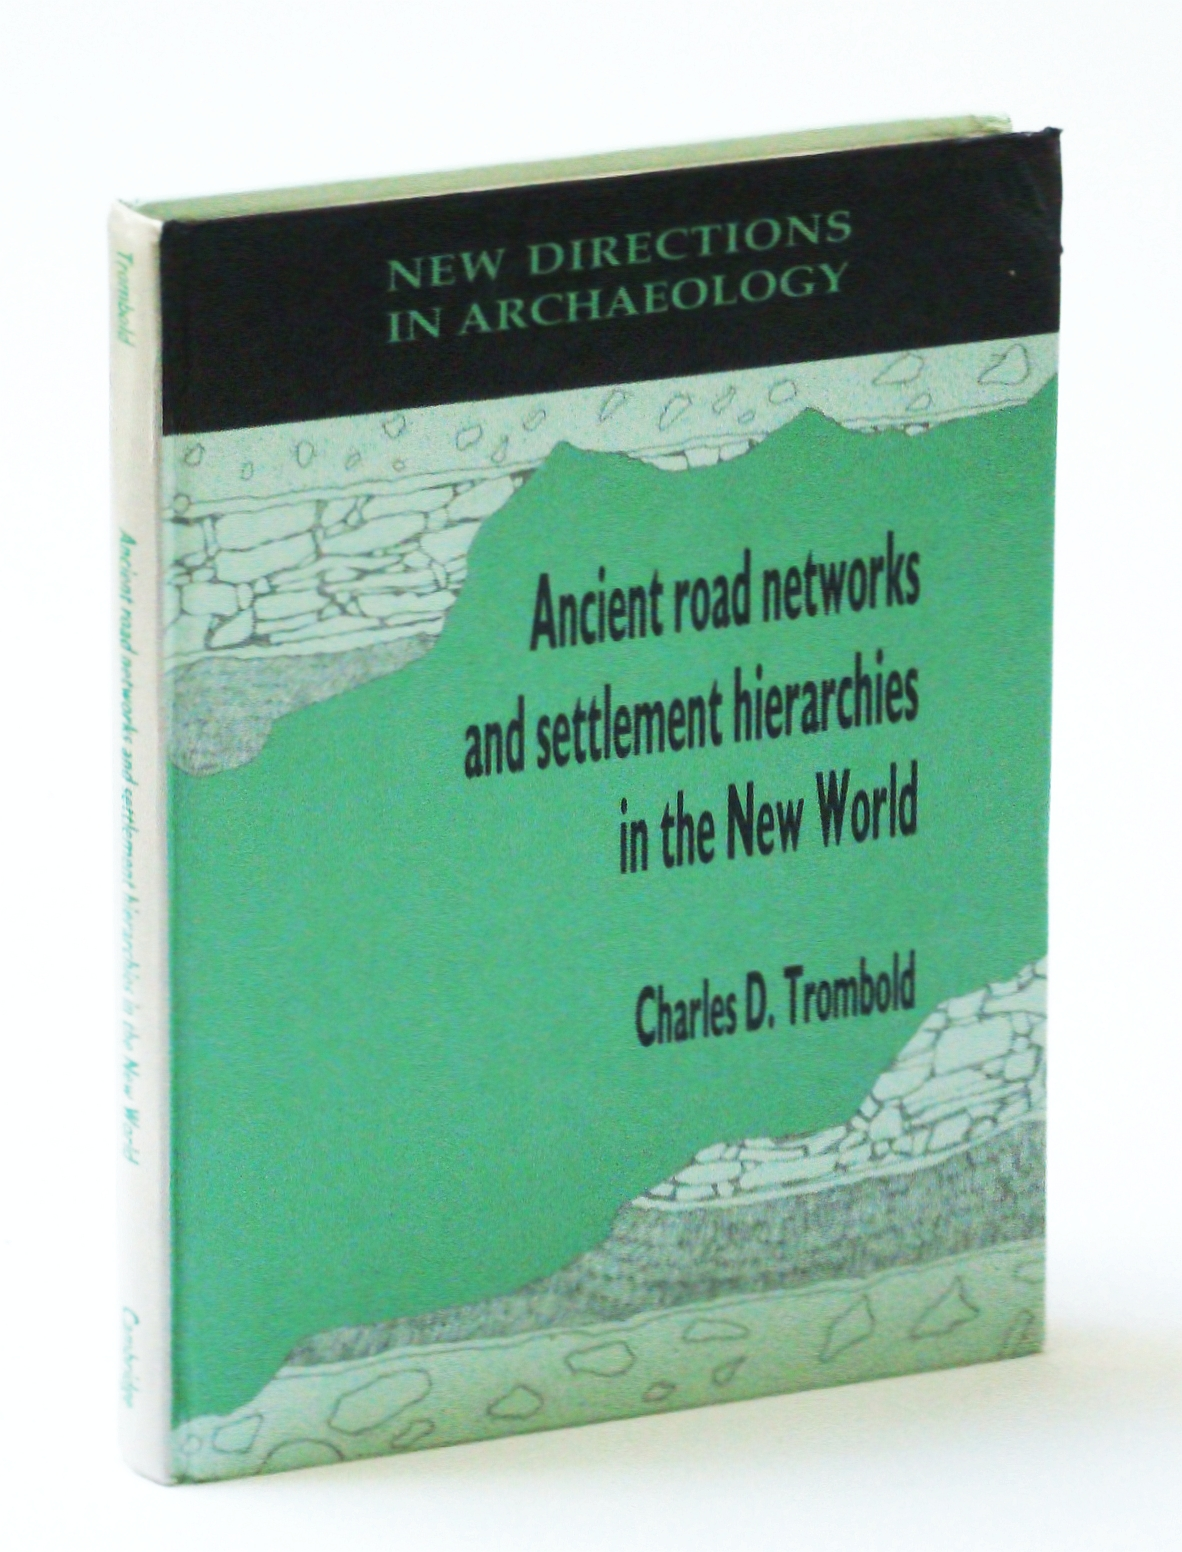 Image for Ancient Road Networks and Settlement Hierarchies in the New World (New Directions in Archaeology)